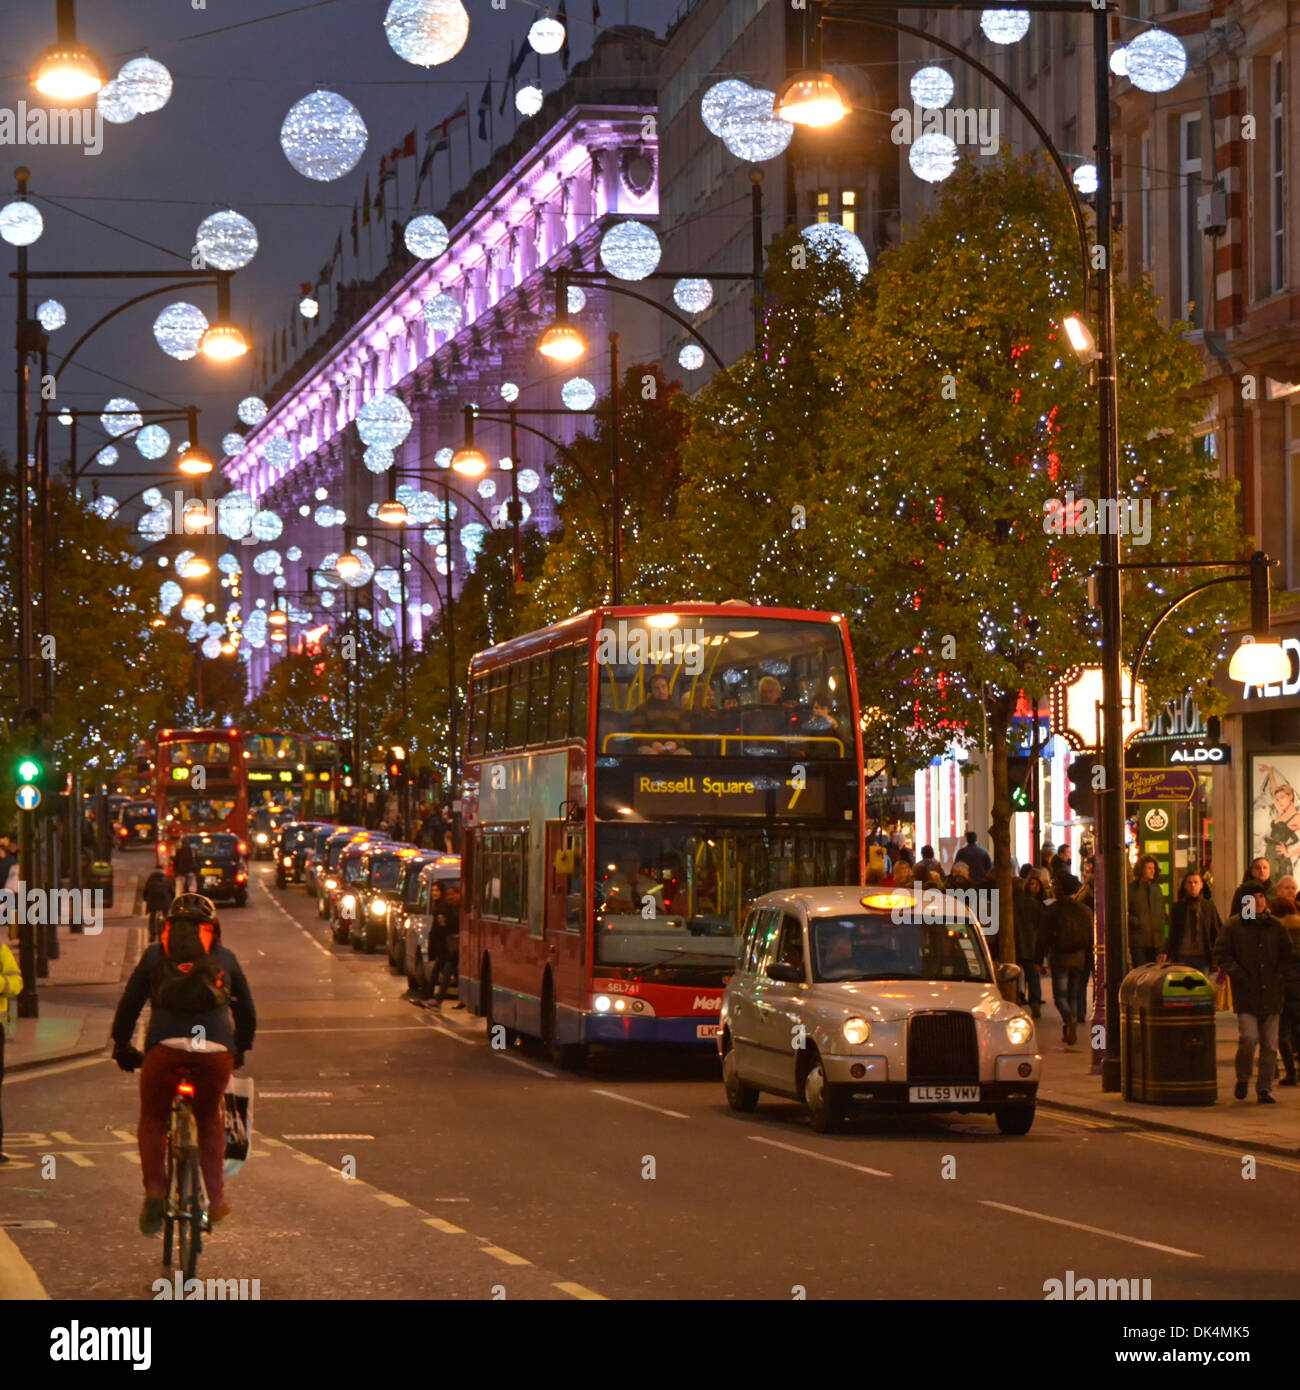 Oxford Street Christmas decorations with Selfridges illuminated store facade - Stock Image